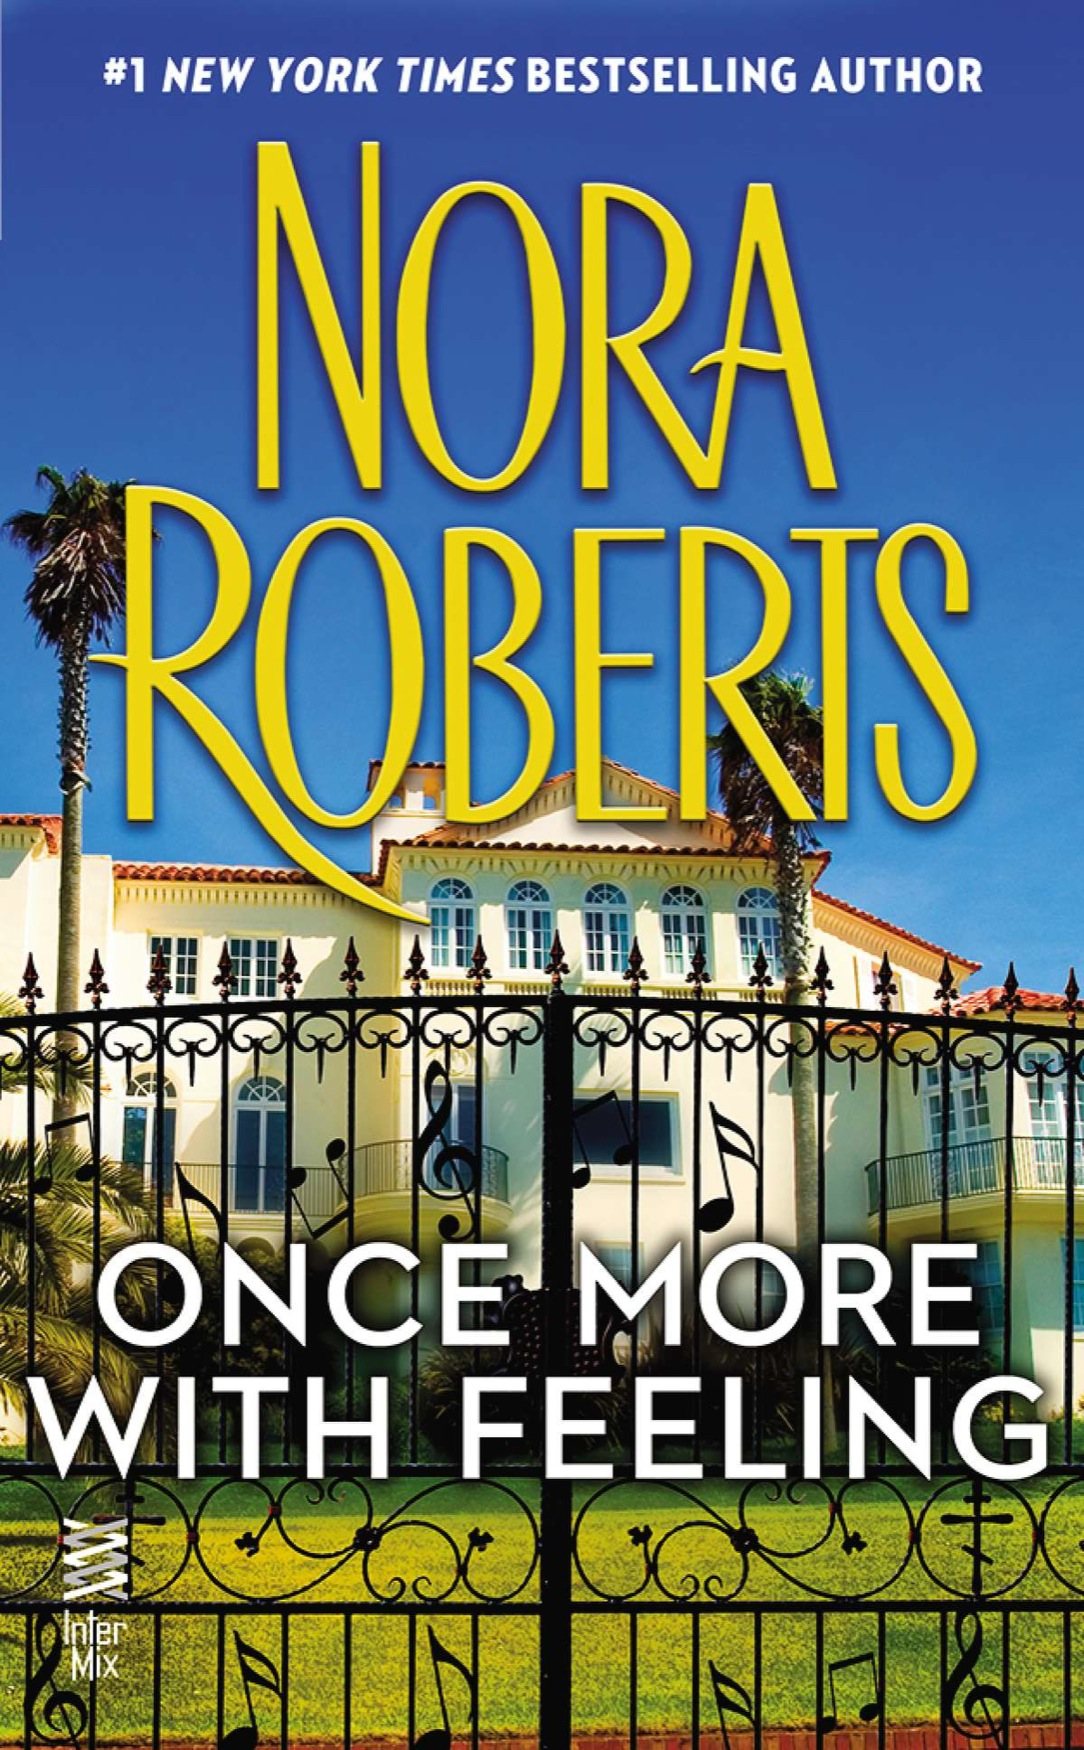 Once More With Feeling (2013) by Nora Roberts